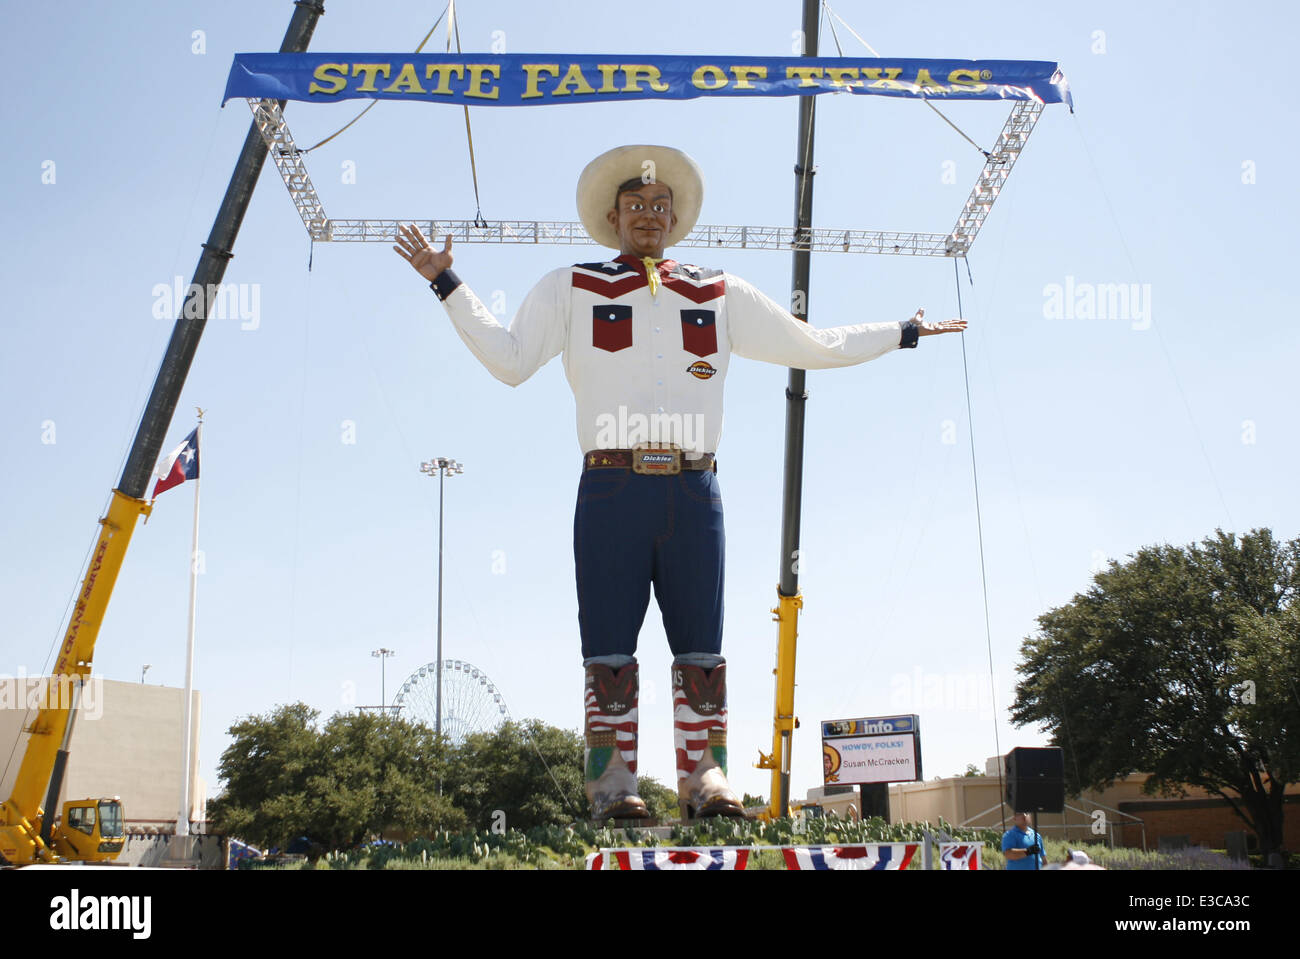 Big tex returns to the state fair of texas big tex caught fire at big tex returns to the state fair of texas big tex caught fire at the previous fair due to an electrical fault and burnt to the ground featuring big tex publicscrutiny Image collections